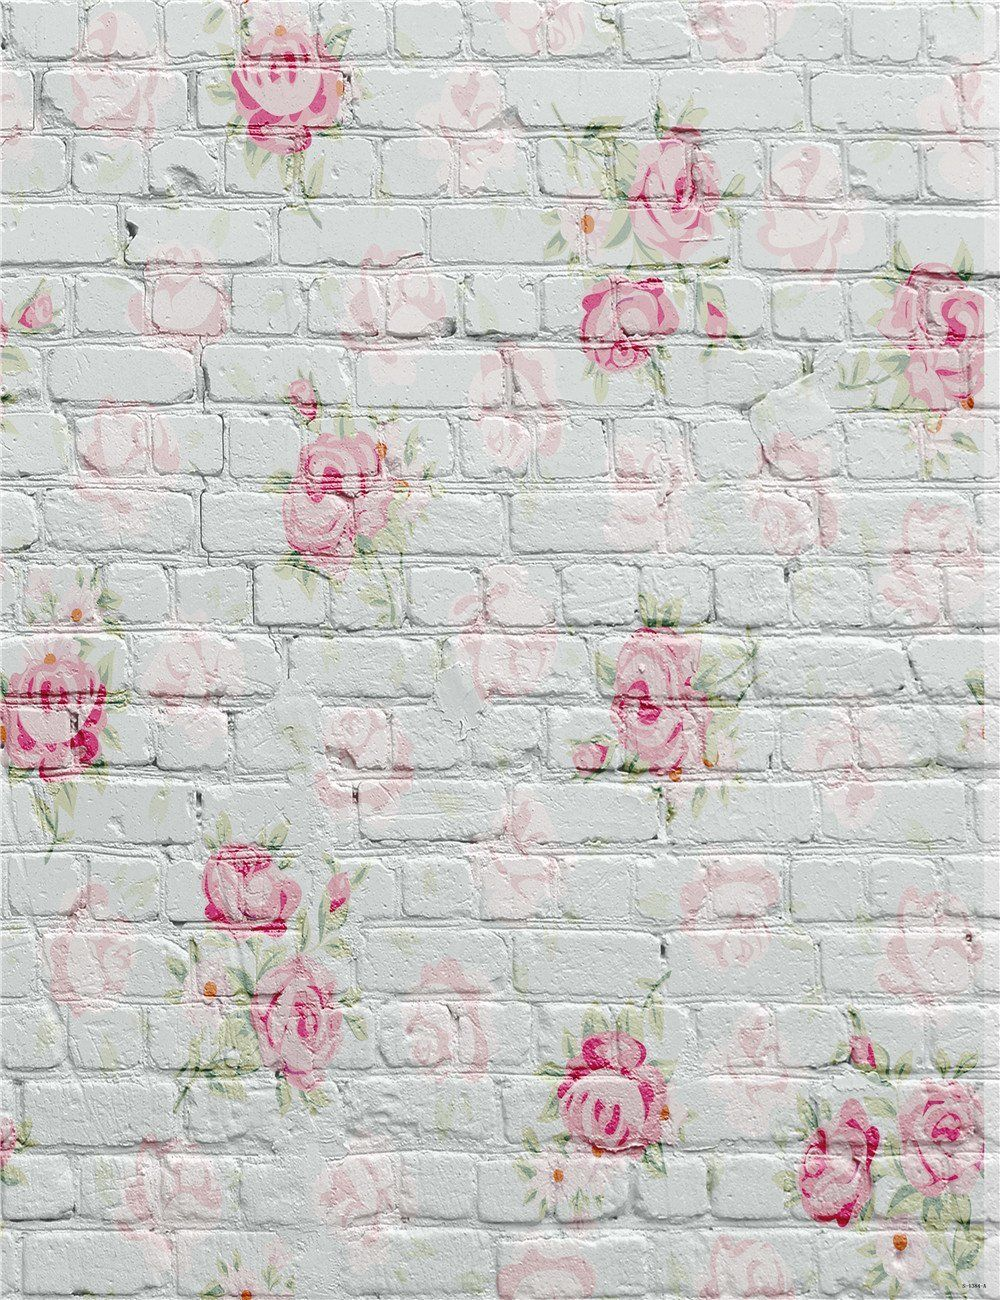 5x6 5ft Photography Background White Brick Wall Pink Flowers White Backdrop For Newborn P Brick Backdrops Flower Wall Backdrop Brick Wall Backdrop